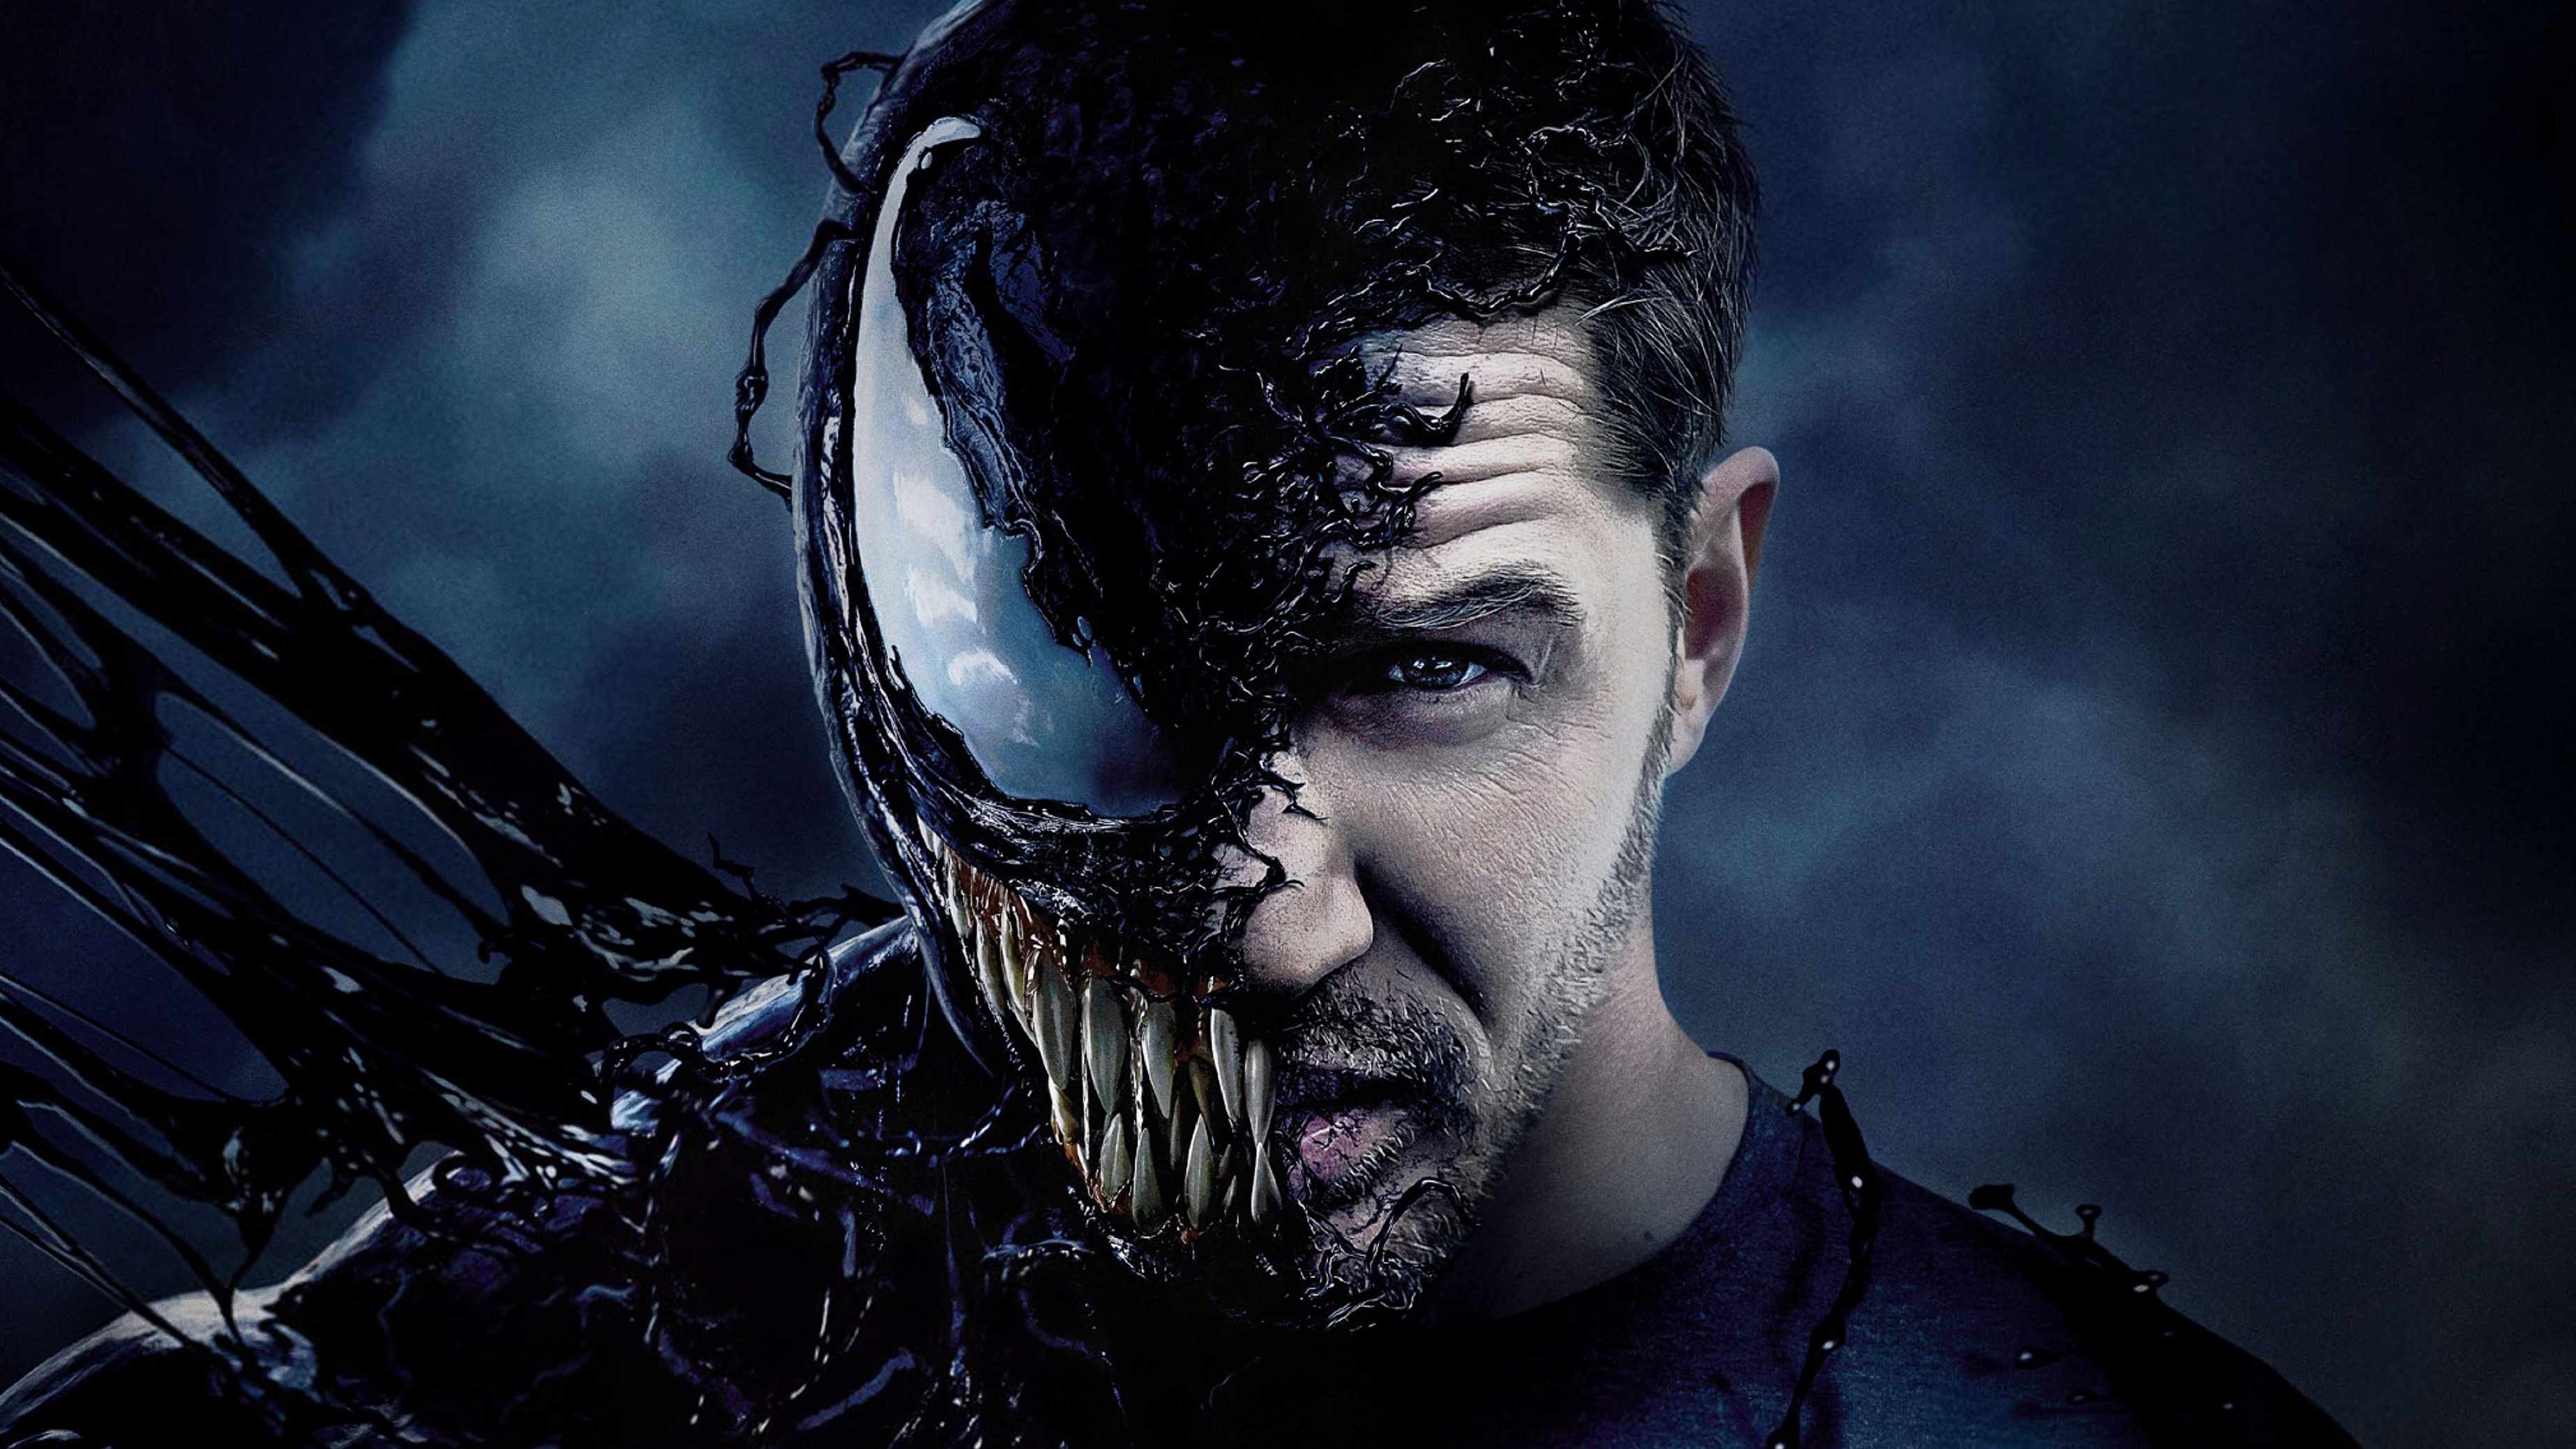 Venom Tom Hardy 4k, HD Movies, 4k Wallpapers, Images ...